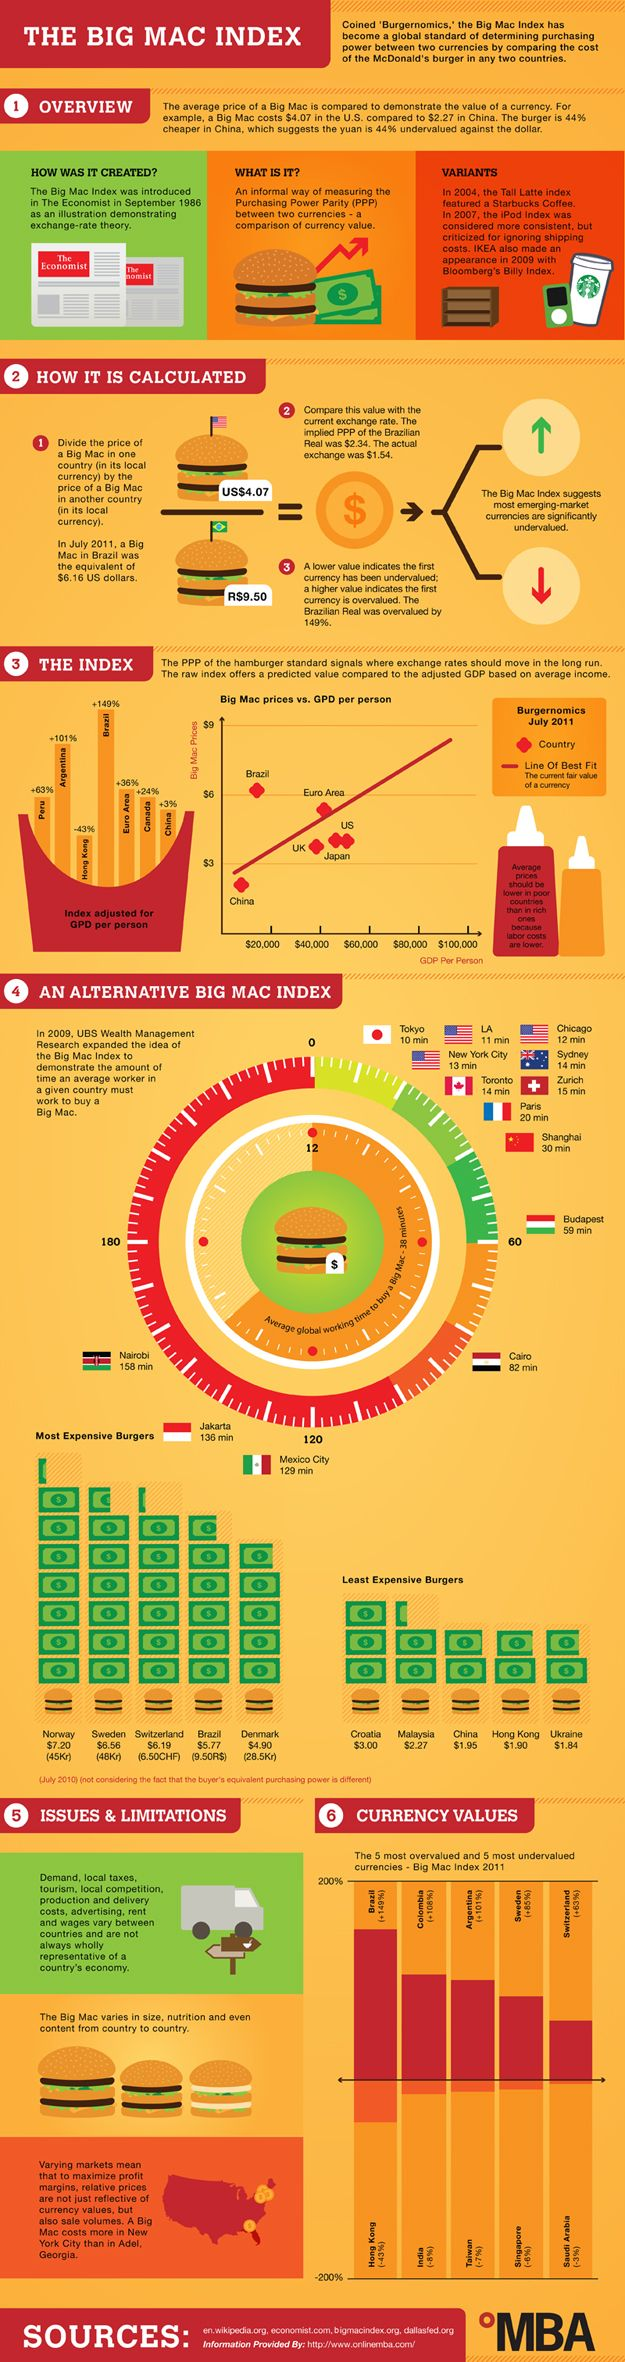 The Current Global Economy Explained With A Big Mac [#infographic]